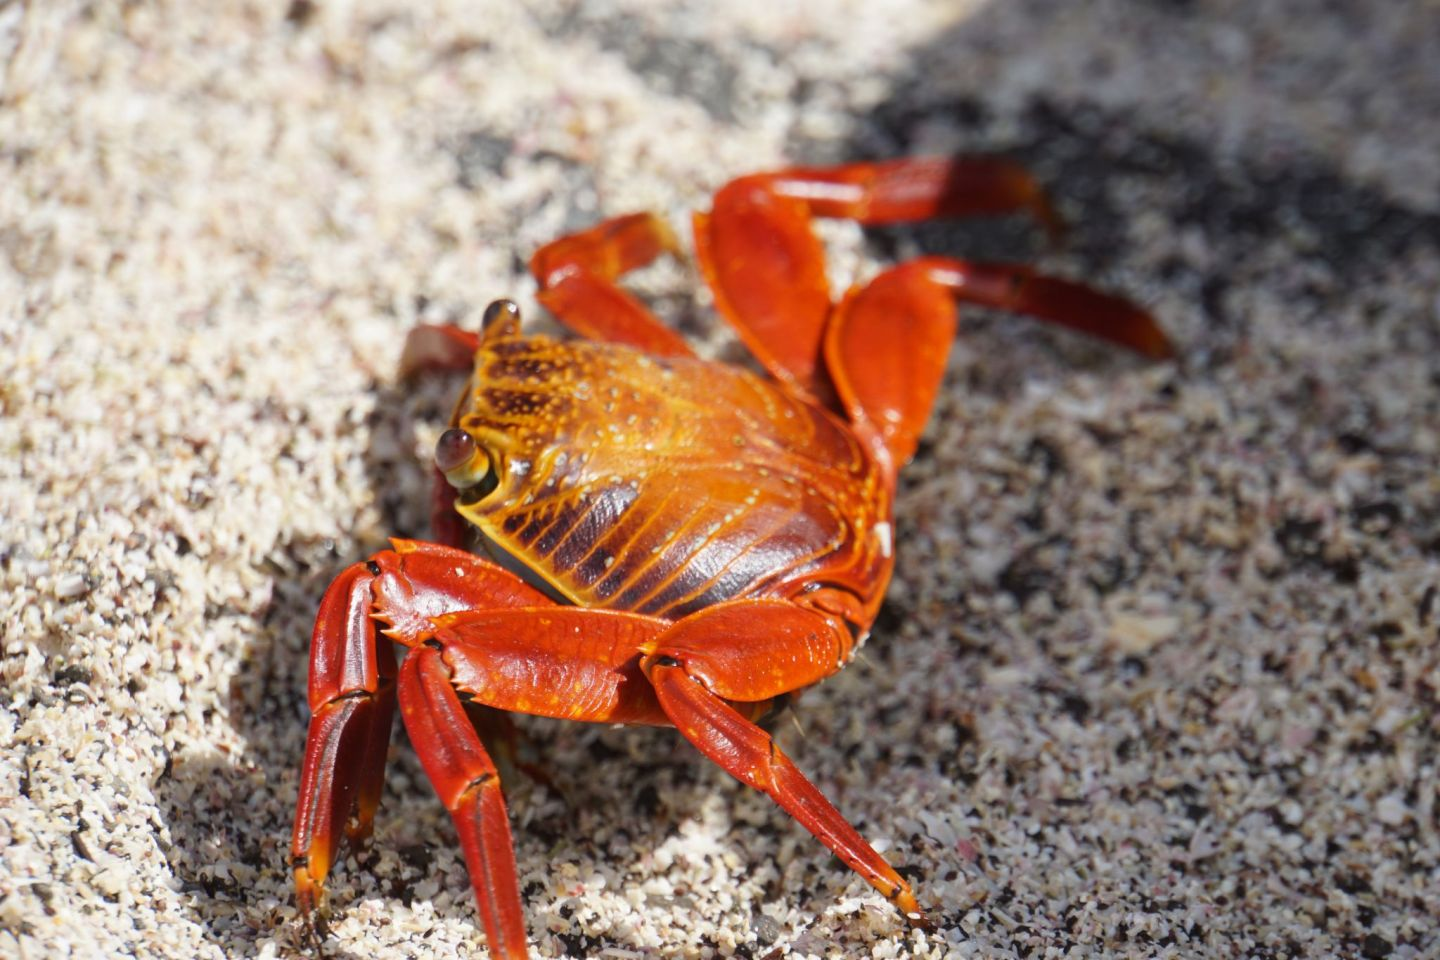 A Sally lightfoot crab on Isla Española on the Galápagos islands.